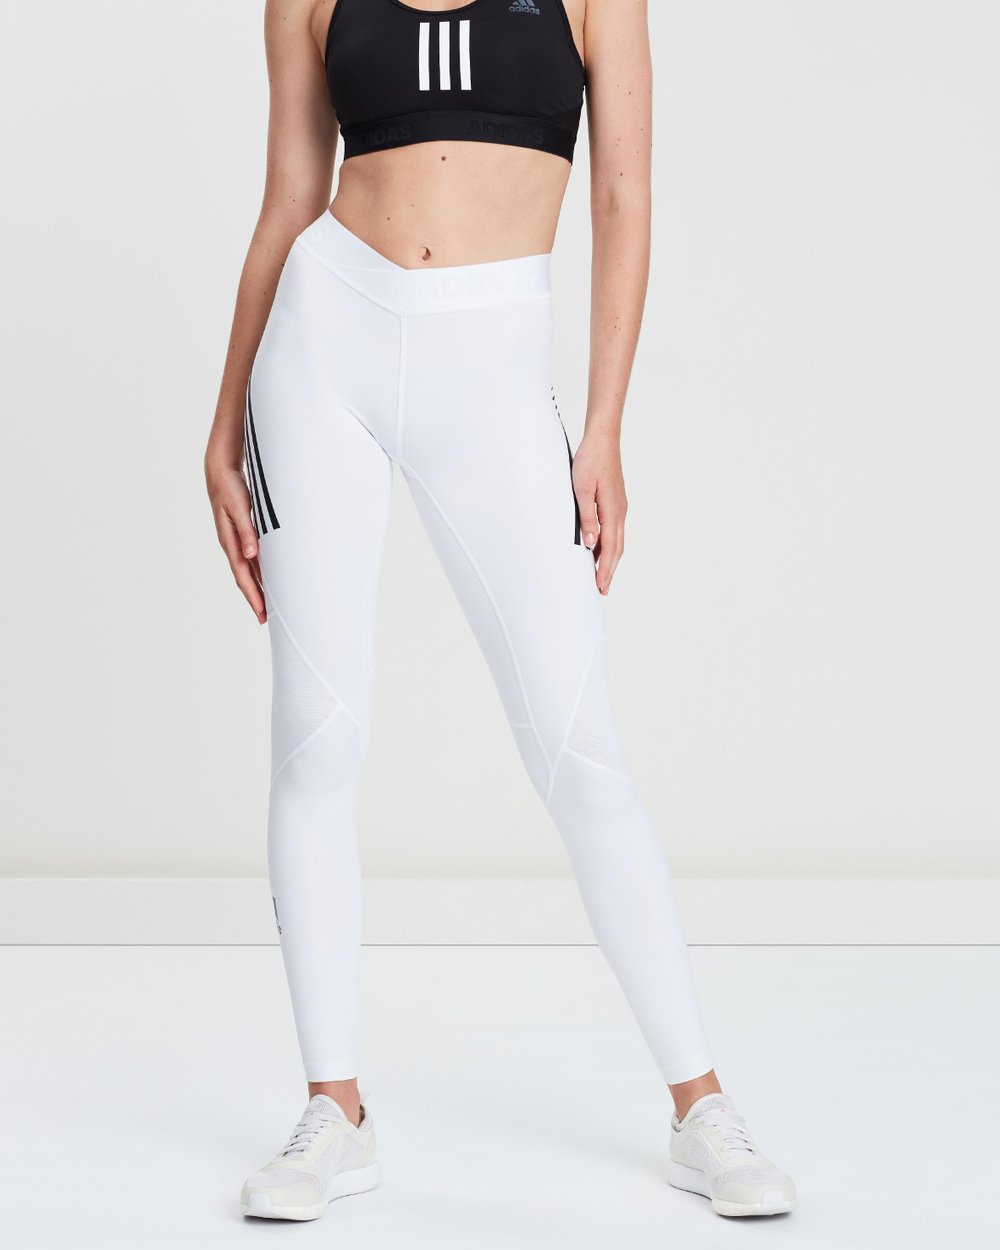 56f6d1a5c0417 Alphaskin Sport 3-Stripes Long Tights by adidas Performance Online | THE  ICONIC | Australia